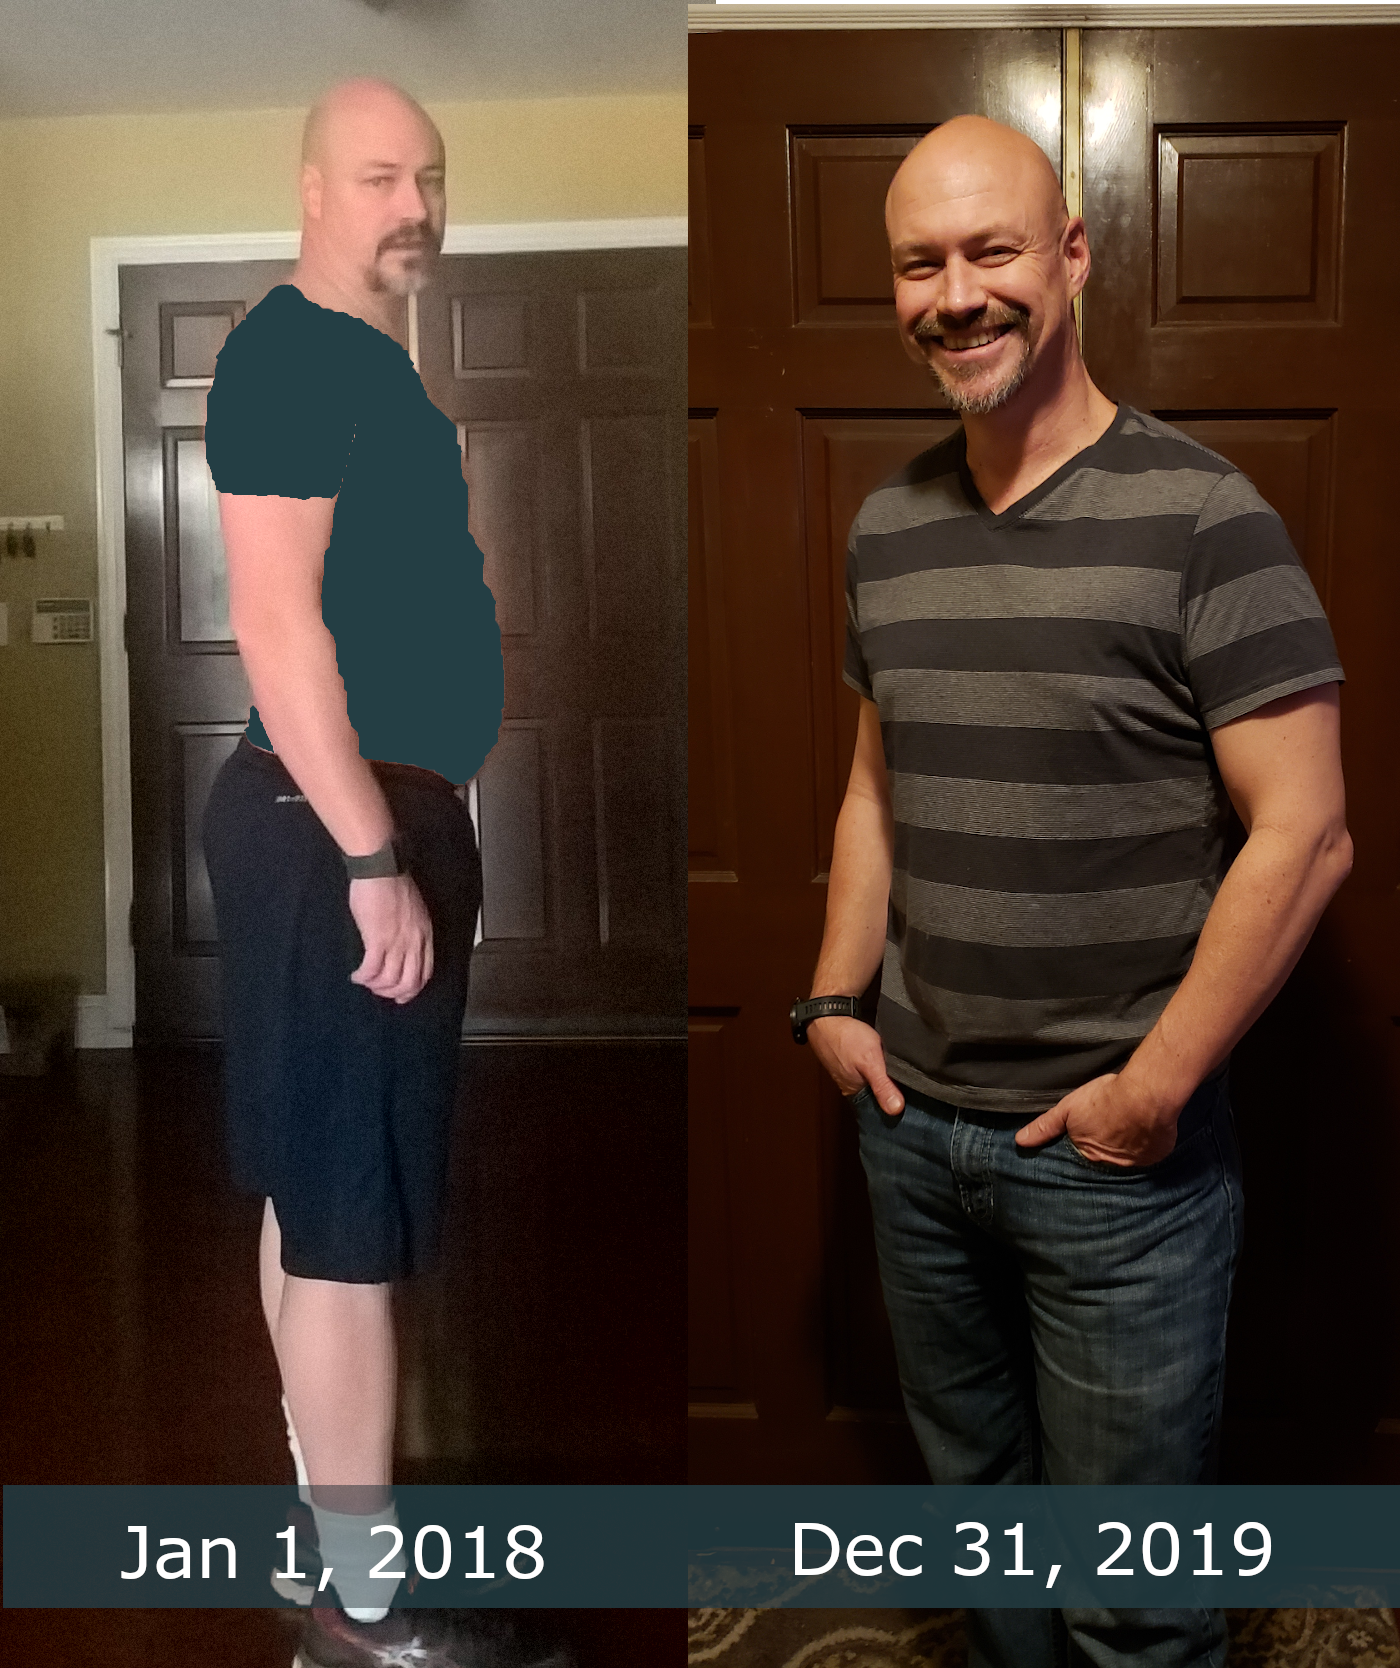 2 years of exercise - before and after